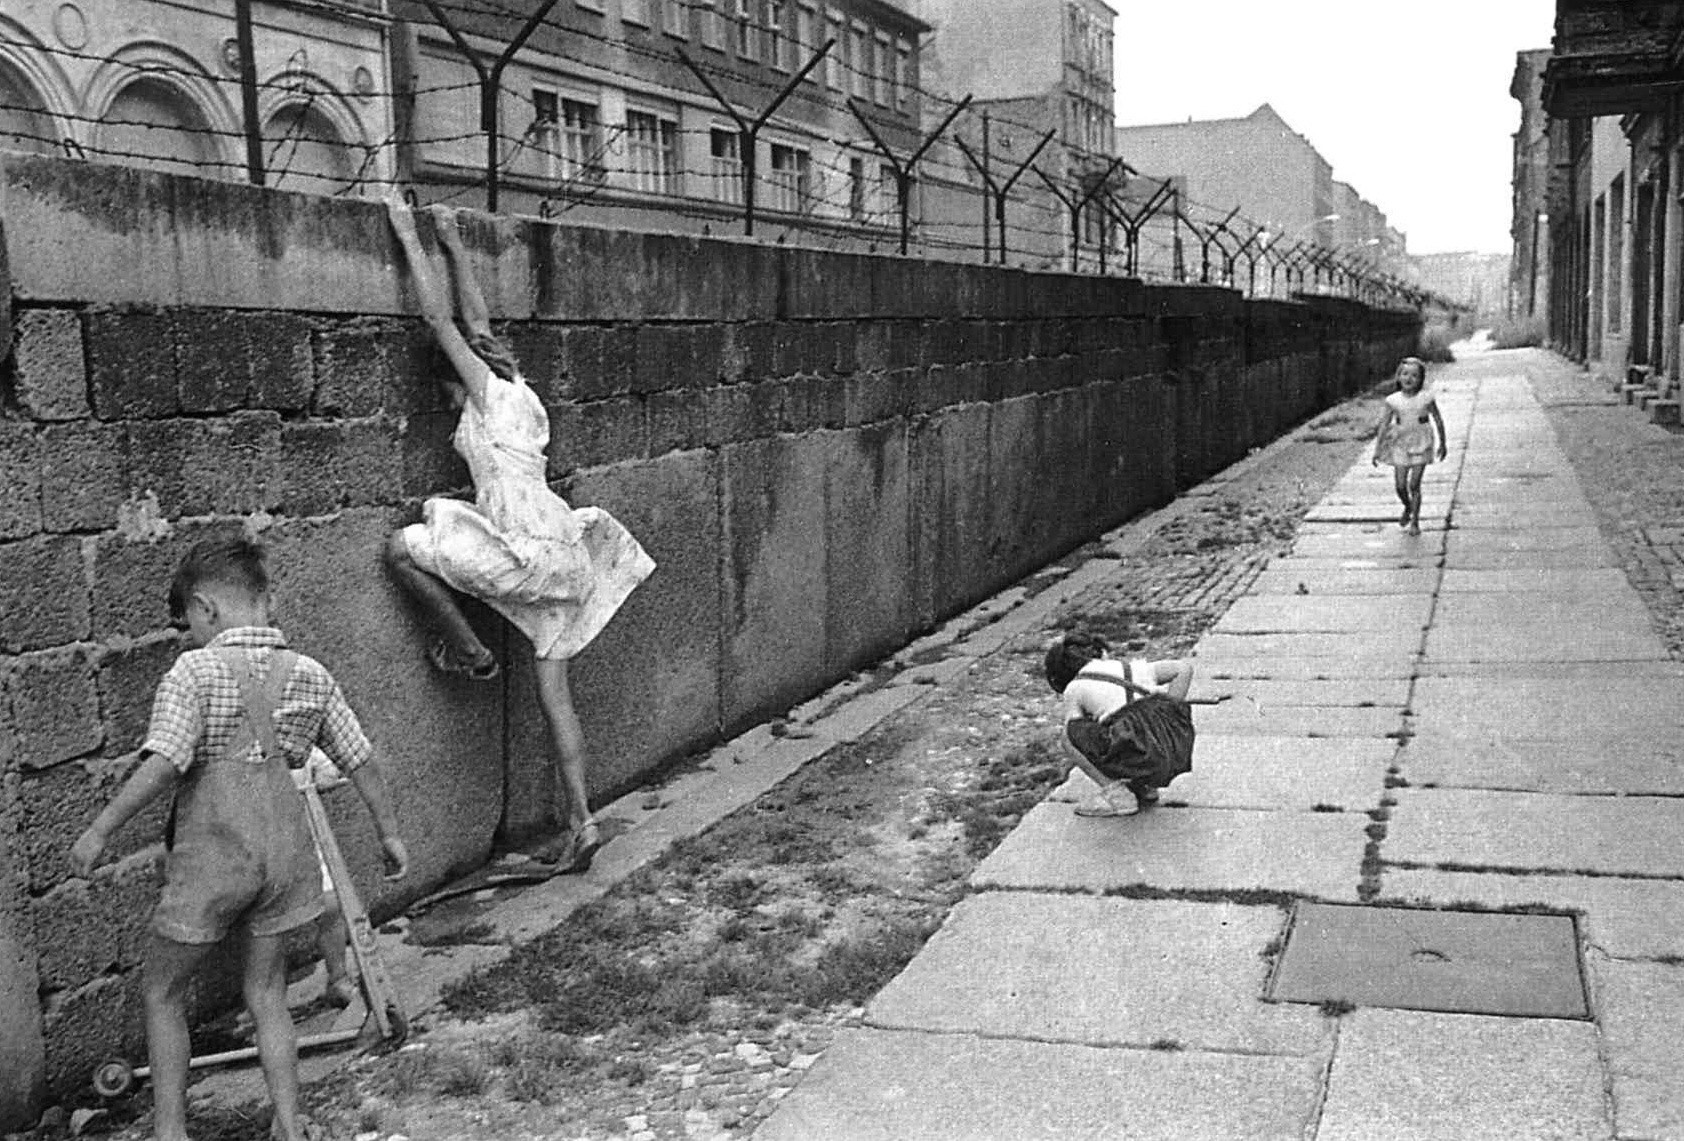 Christ would have instructed us to tear down those walls, not build them. Photo taken in West Berlin, 1962.